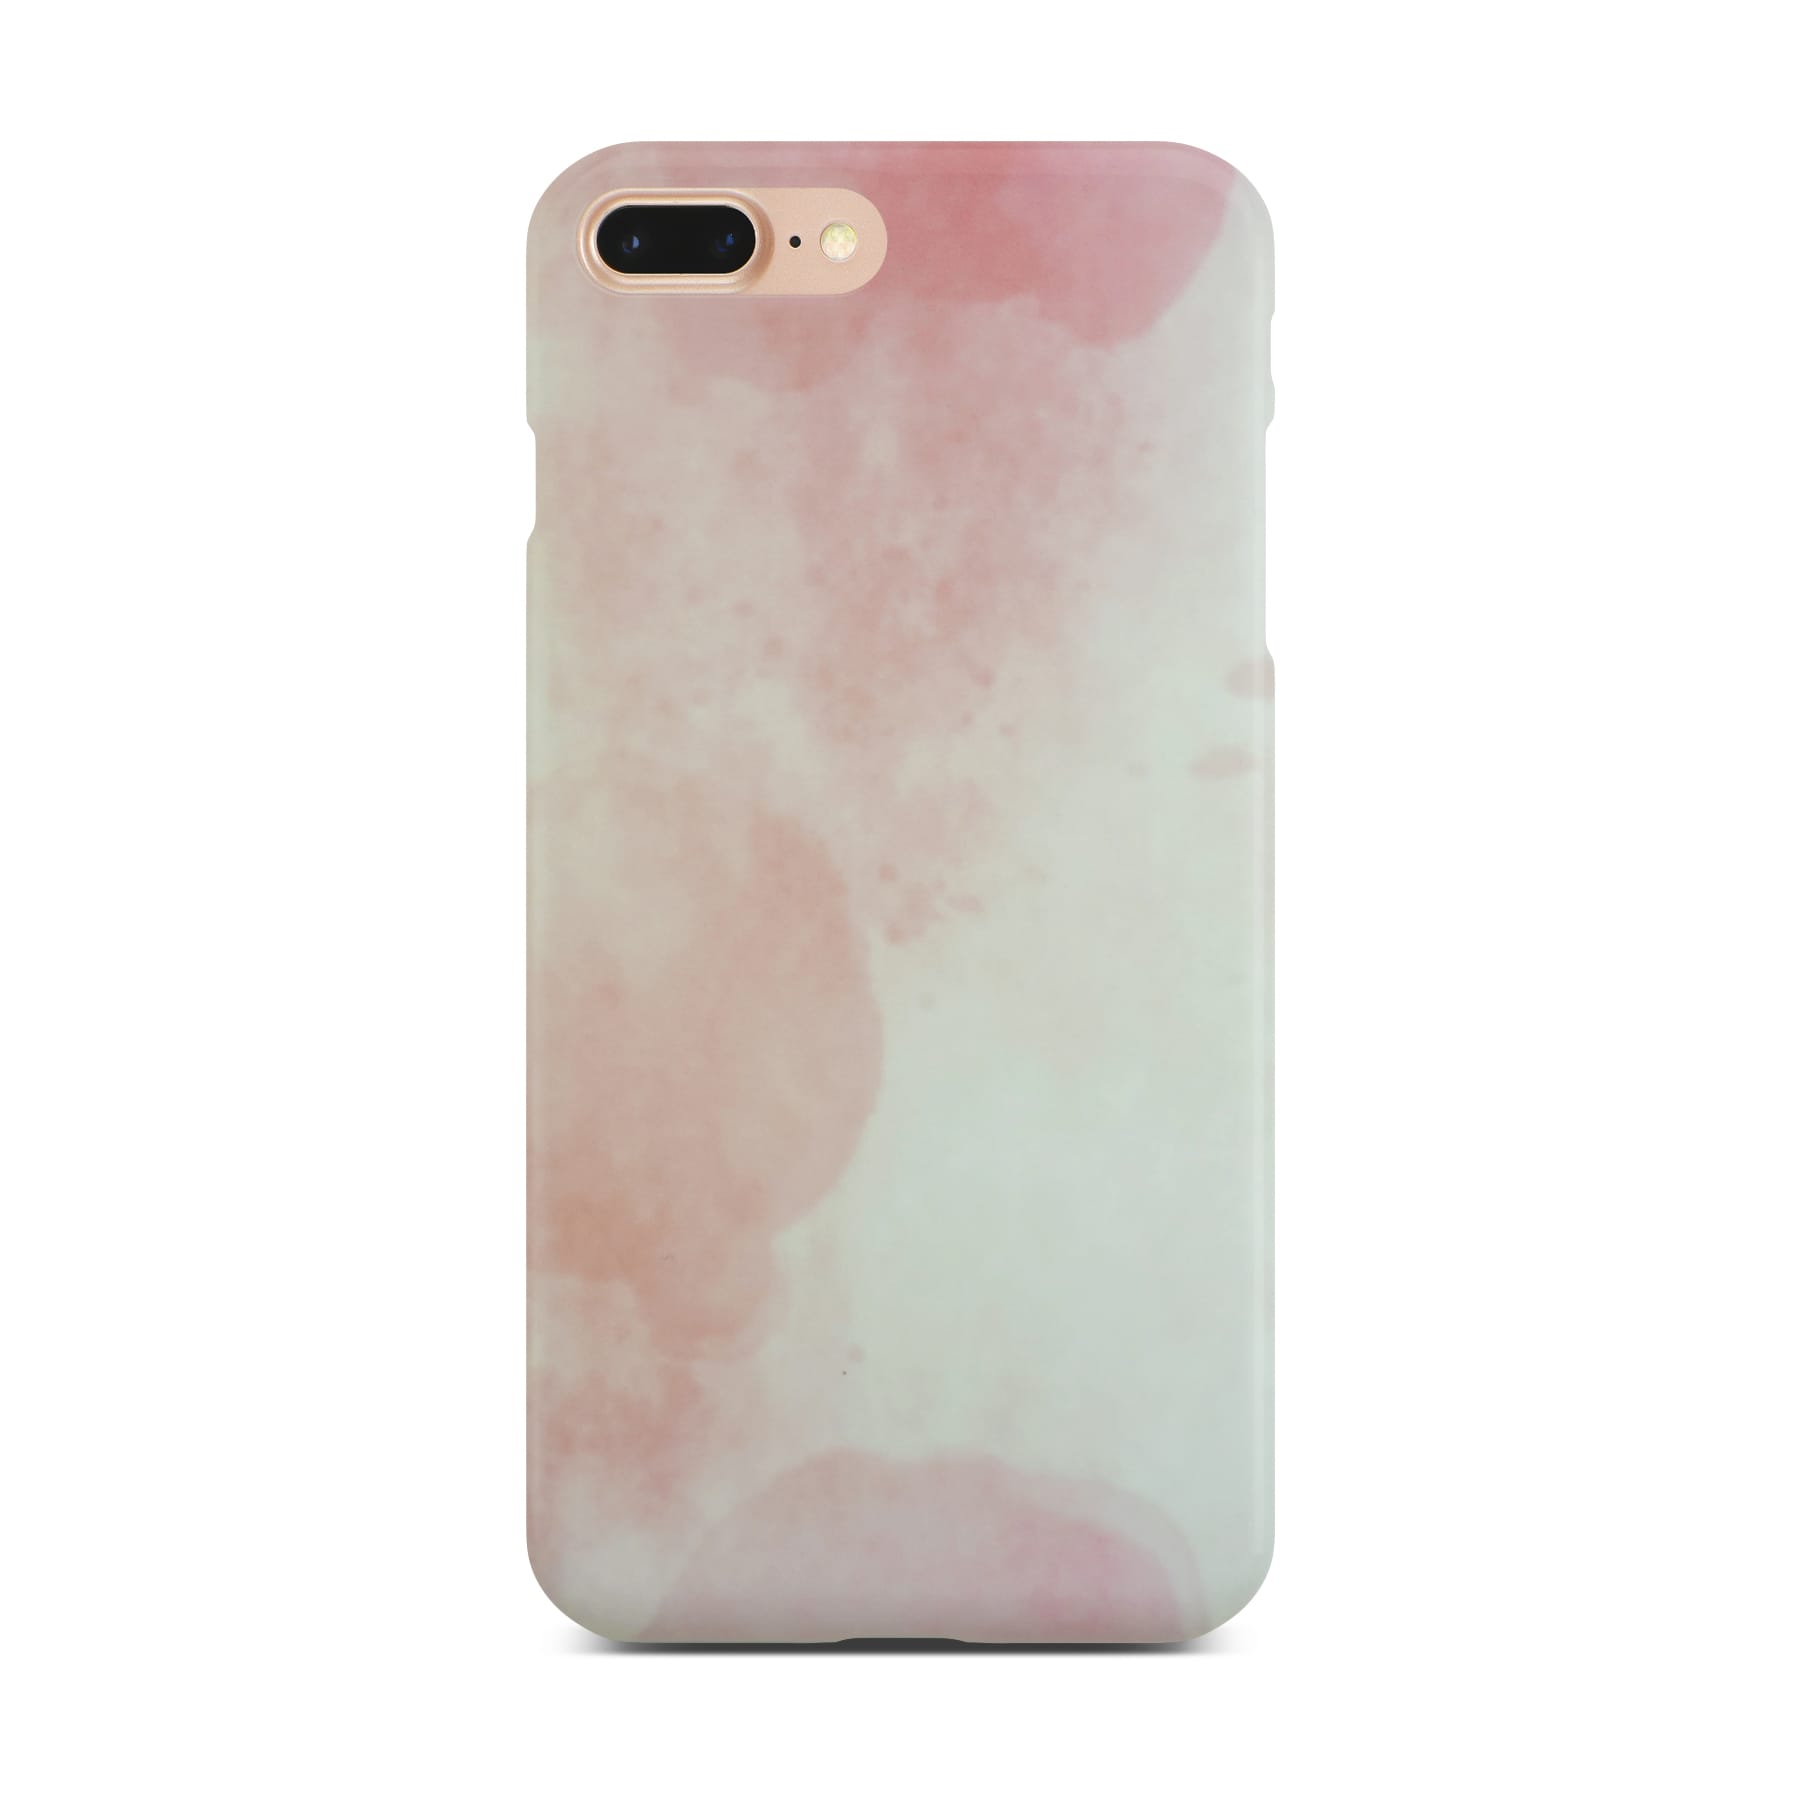 Matt Pink Marble Case On Gold iPhone 8 Plus